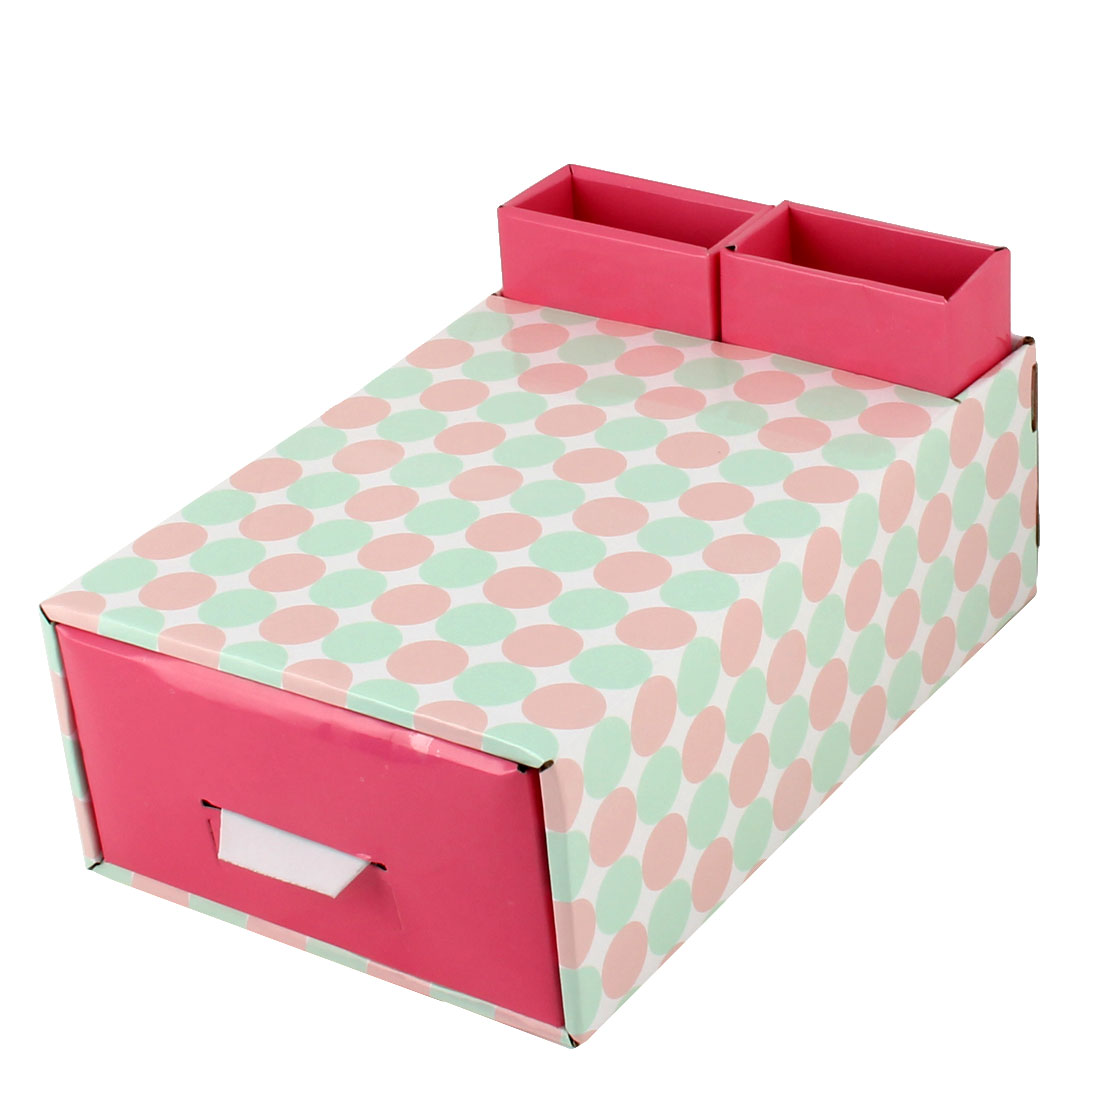 Unique Bargains Home Paper Dot Pattern DIY Foldable Book Holder Container Storage Box Case Red - image 6 of 6